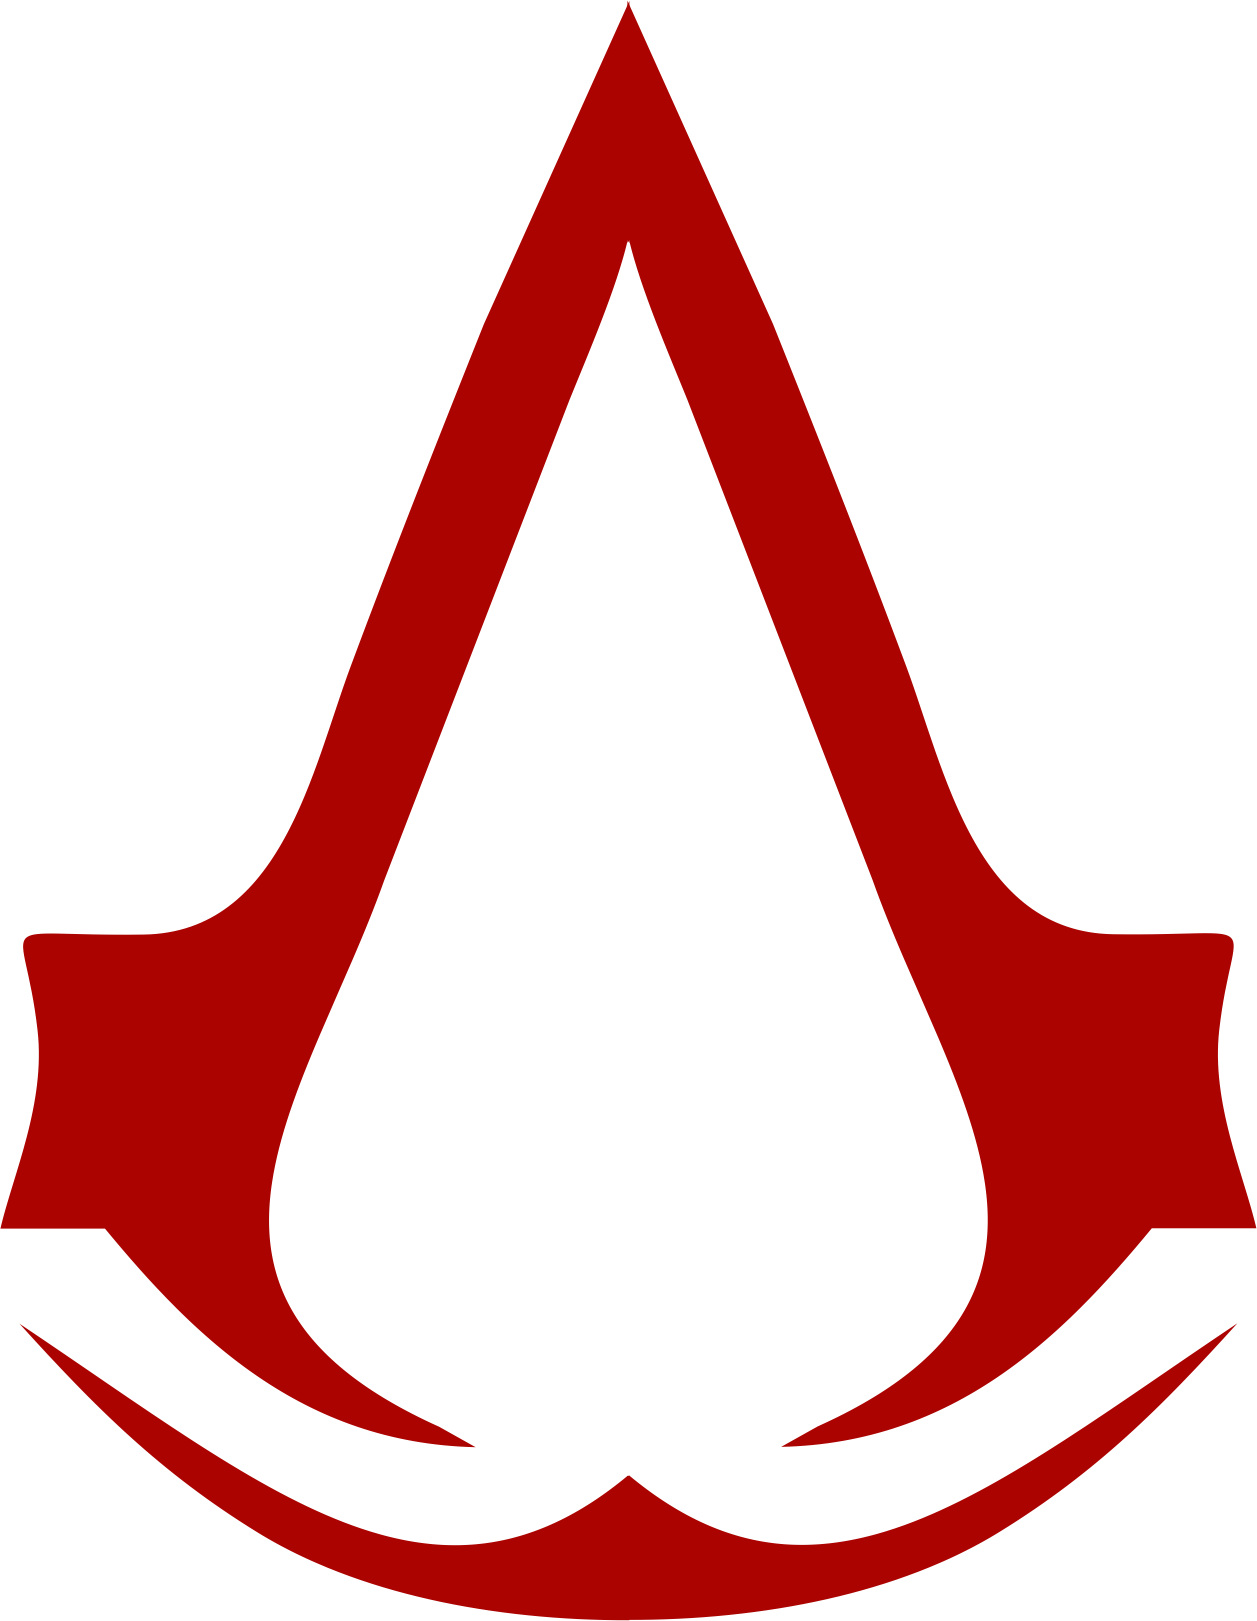 Red Assasins Creed Icon PNG Image